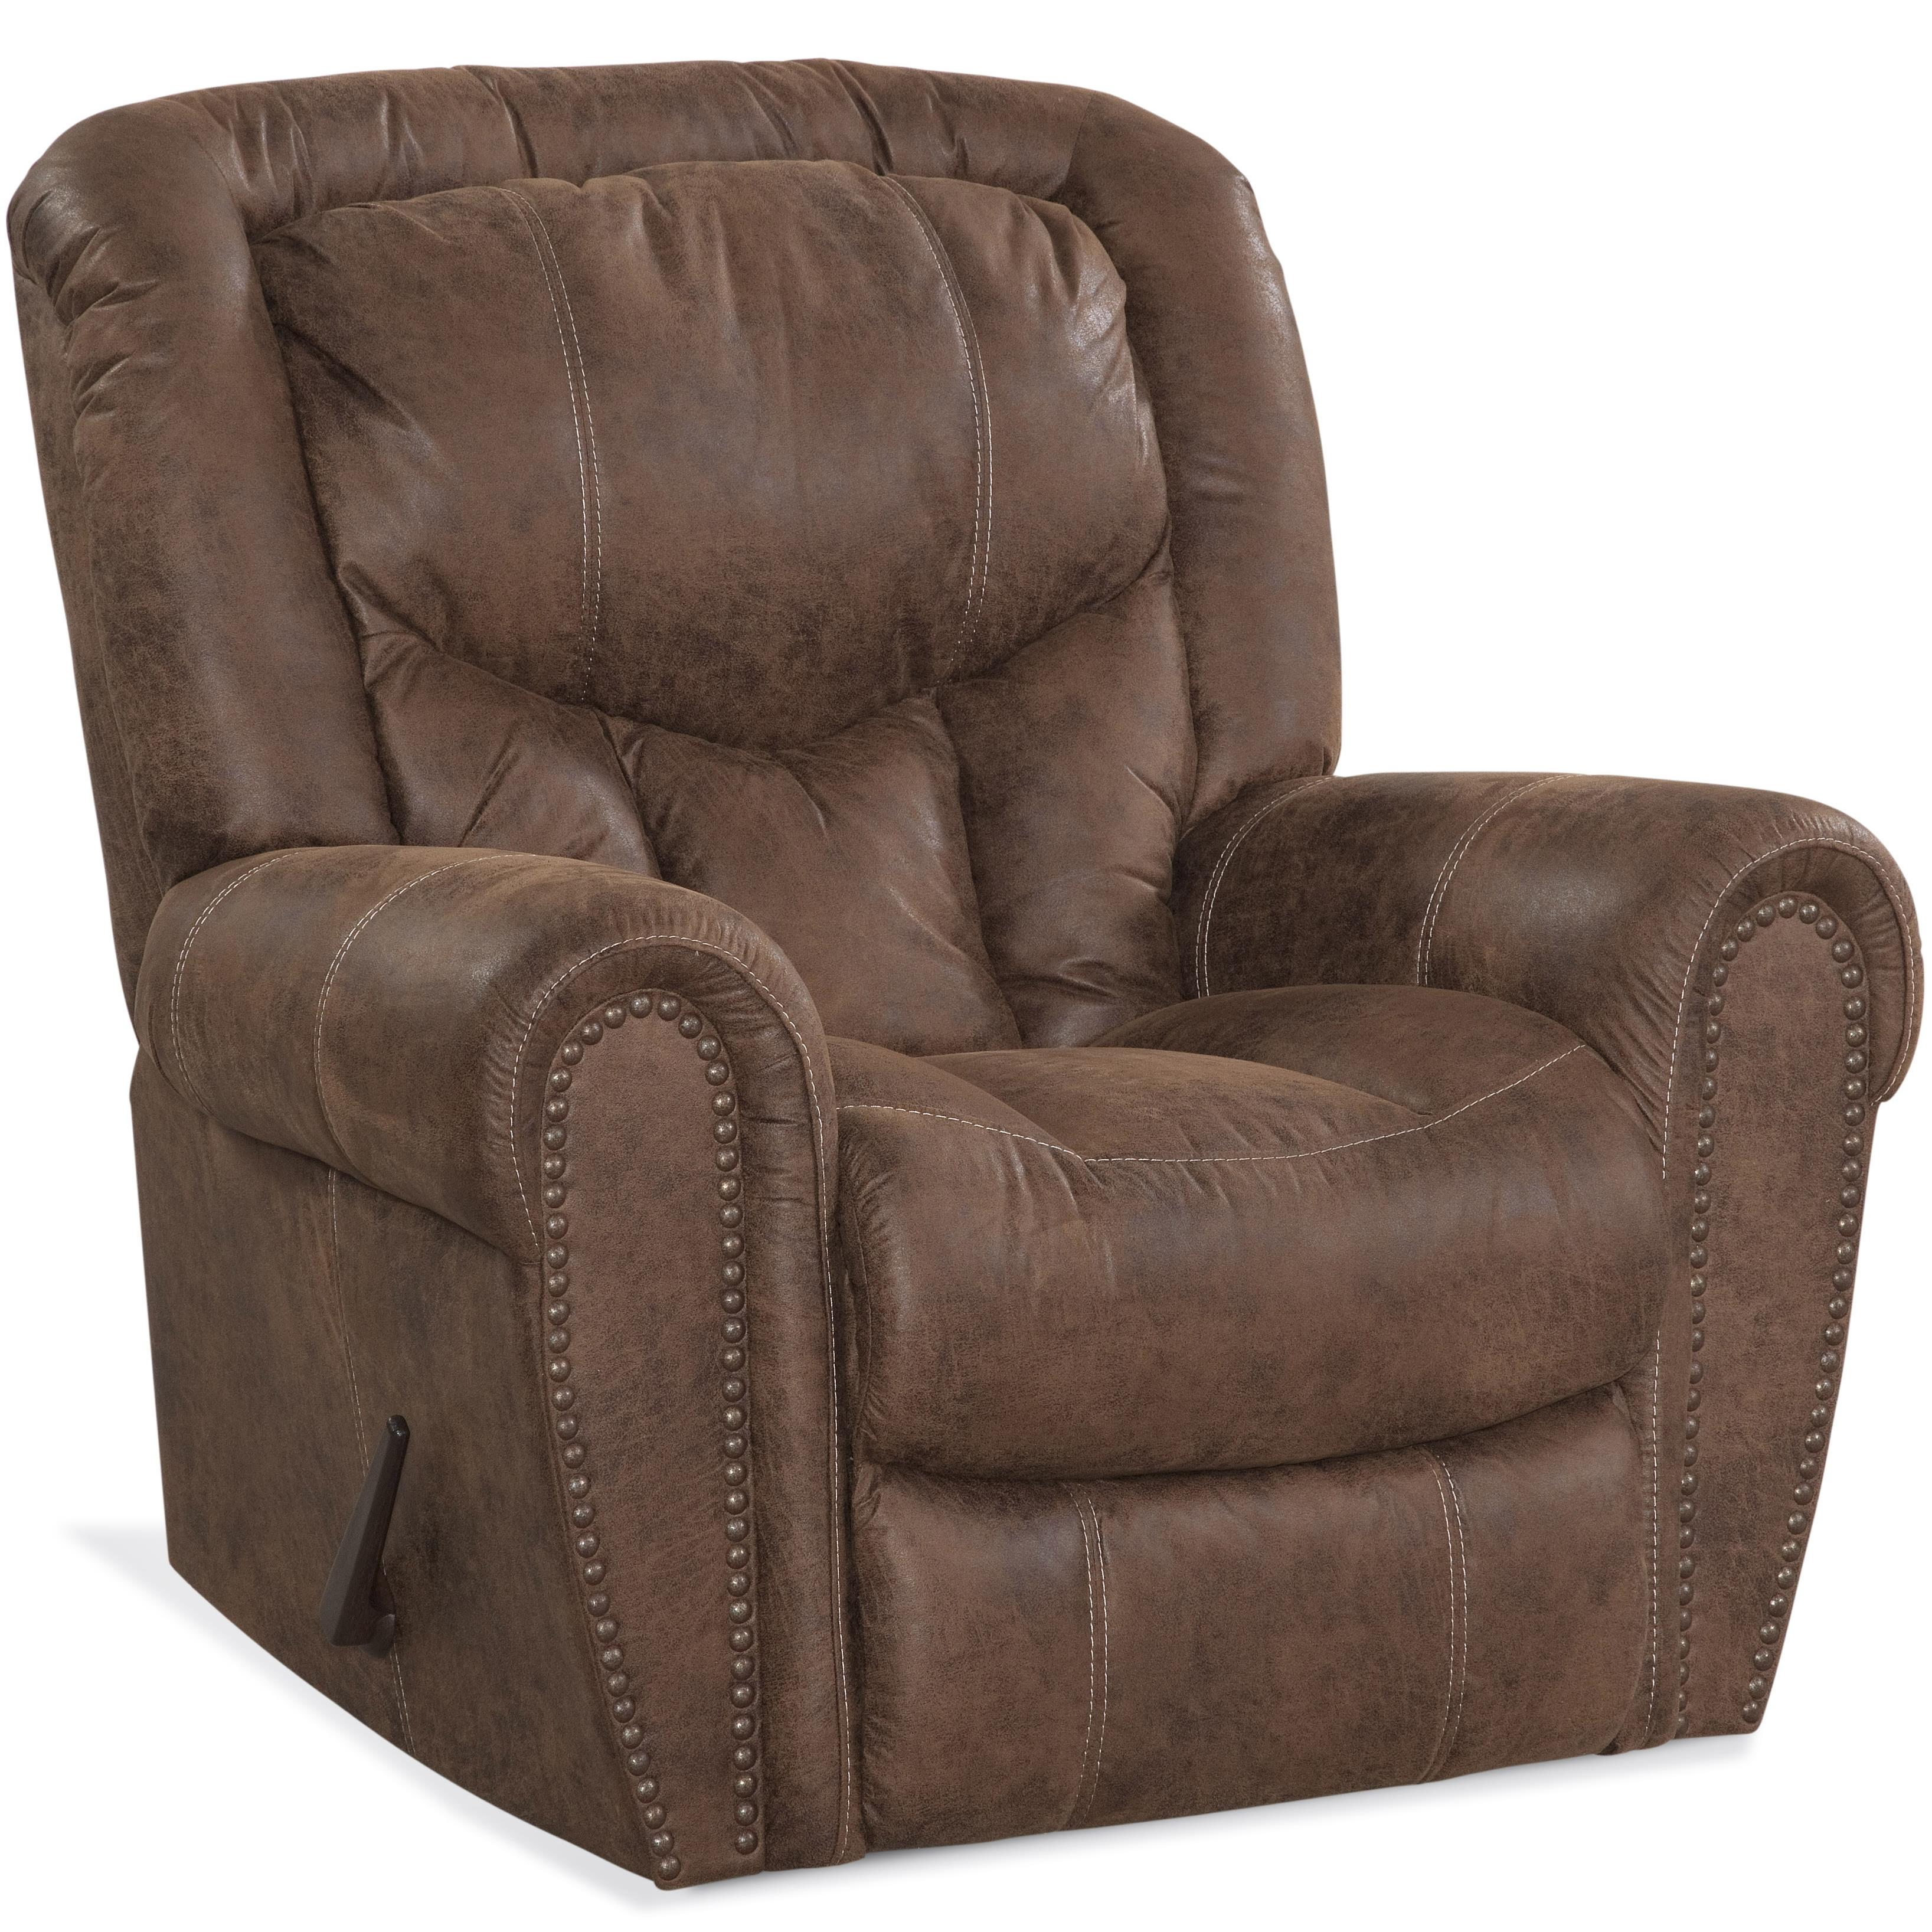 HomeStretch 123 Collection Traditional Rocker Recliner - Item Number: 123-91-17